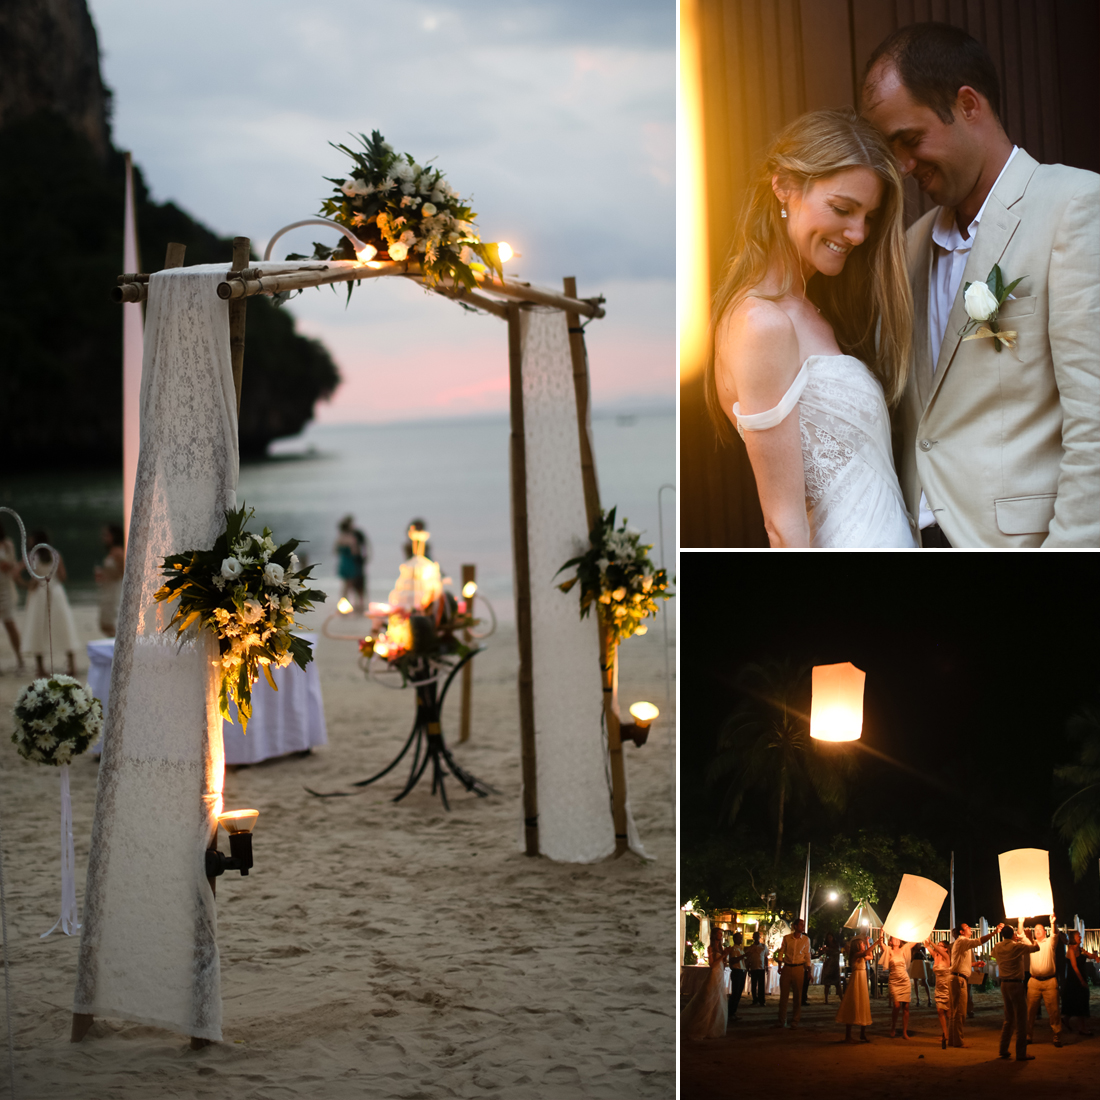 """Do you have any advice for other brides planning a destination wedding? """"Weddings in general can be stressful to plan, no matter if it is close to home or halfway around the world. We thought a destination wedding would be stress-free, but I don't think that there is such a thing. We wouldn't change our decision for the world, though!   """"We recommend designing the invitations to include as much information as possible. The invitations should both excite and prepare your guests for a destination wedding abroad. The more information you can include, the better. If guests understand that it is more than just a wedding and will be a travel experience, the more comfortable and excited they will be with the journey. We also set up a wedding website, which contained additional information for guests (trip planning information, accommodation, etc.). """"We also planned a series of events before the wedding, which not only gave us the opportunity to show off some of our favorite sites but also gave our guests the chance to get to know each other before the big day. By the time the wedding day arrived, all of our guests were comfortable with one another, having experienced so much together."""" Source: Melissa McClure Photography"""